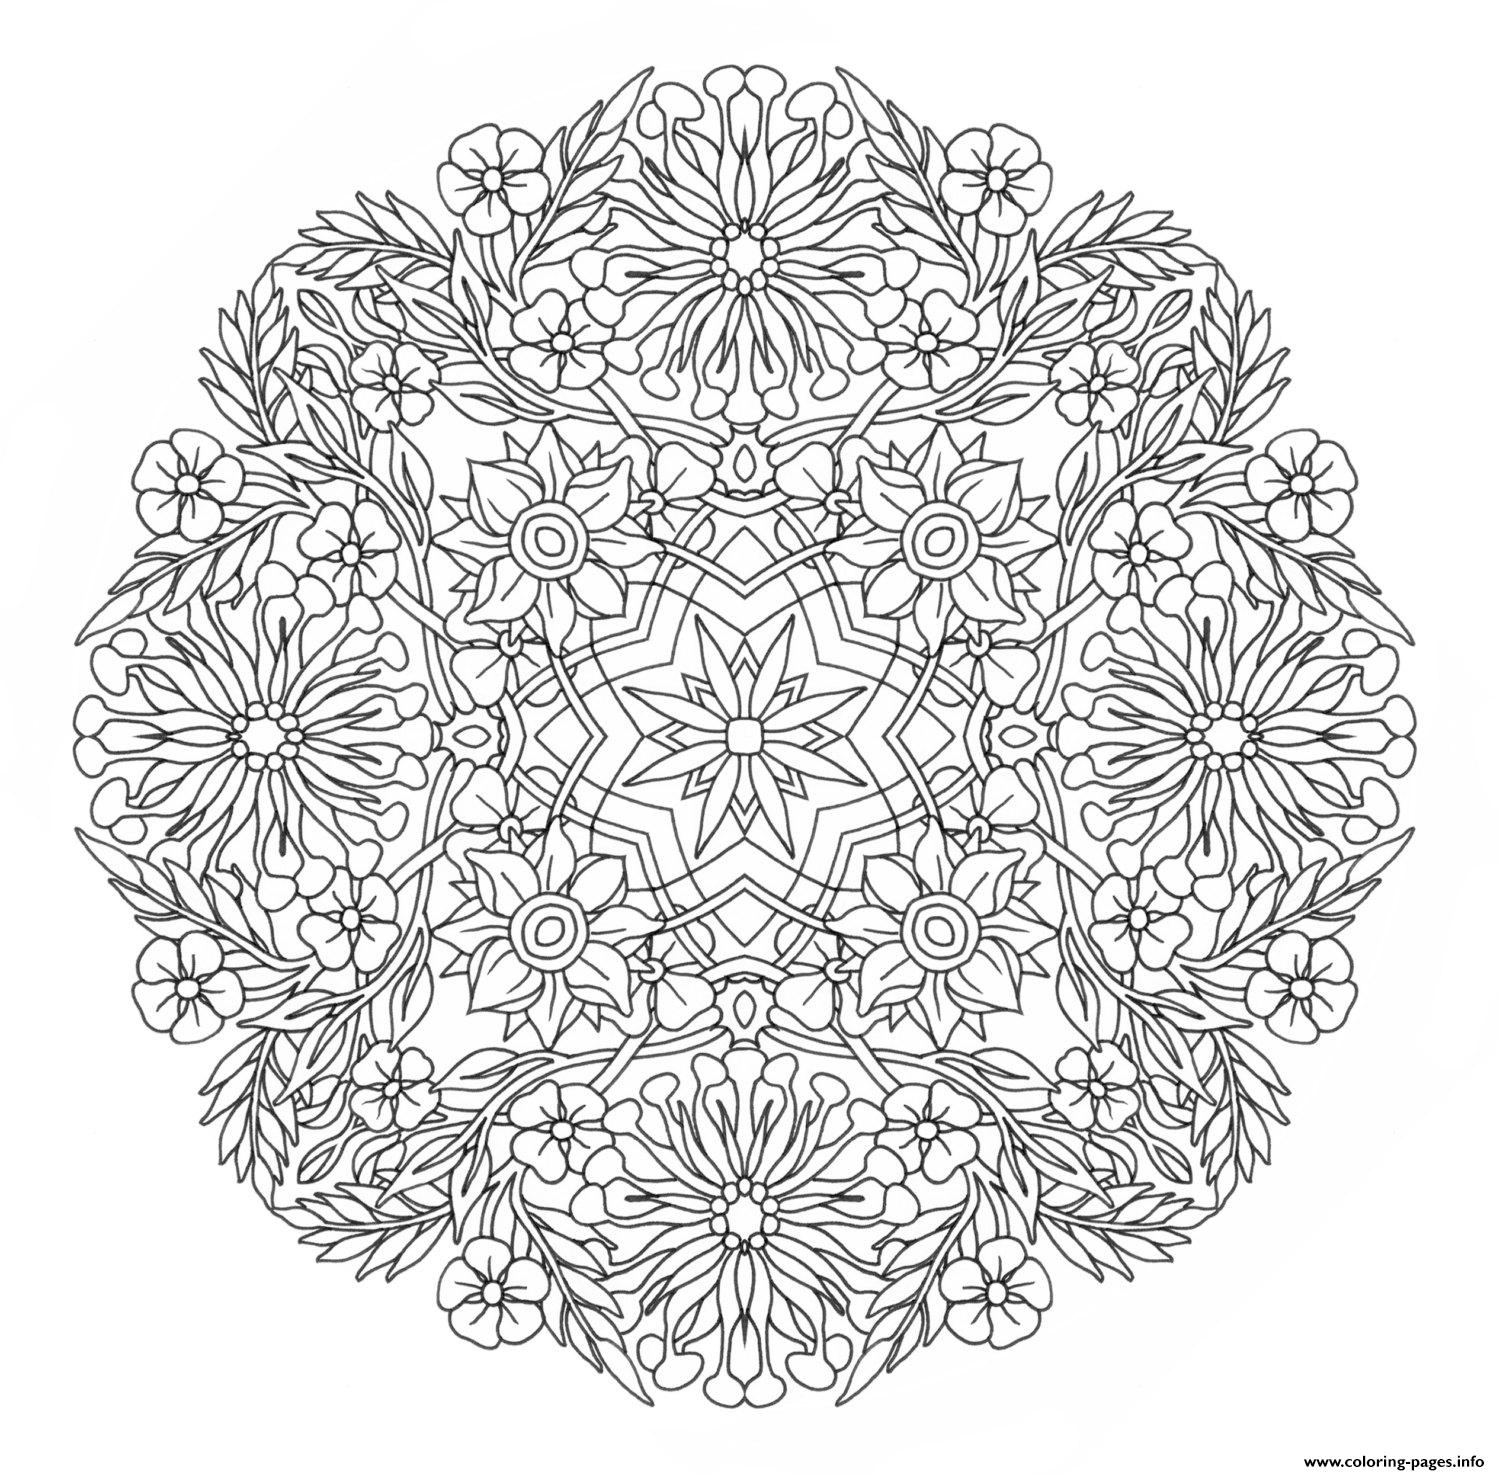 advanced mandala coloring pages Advanced Mandala Complex Creative Design Coloring Pages Printable advanced mandala coloring pages